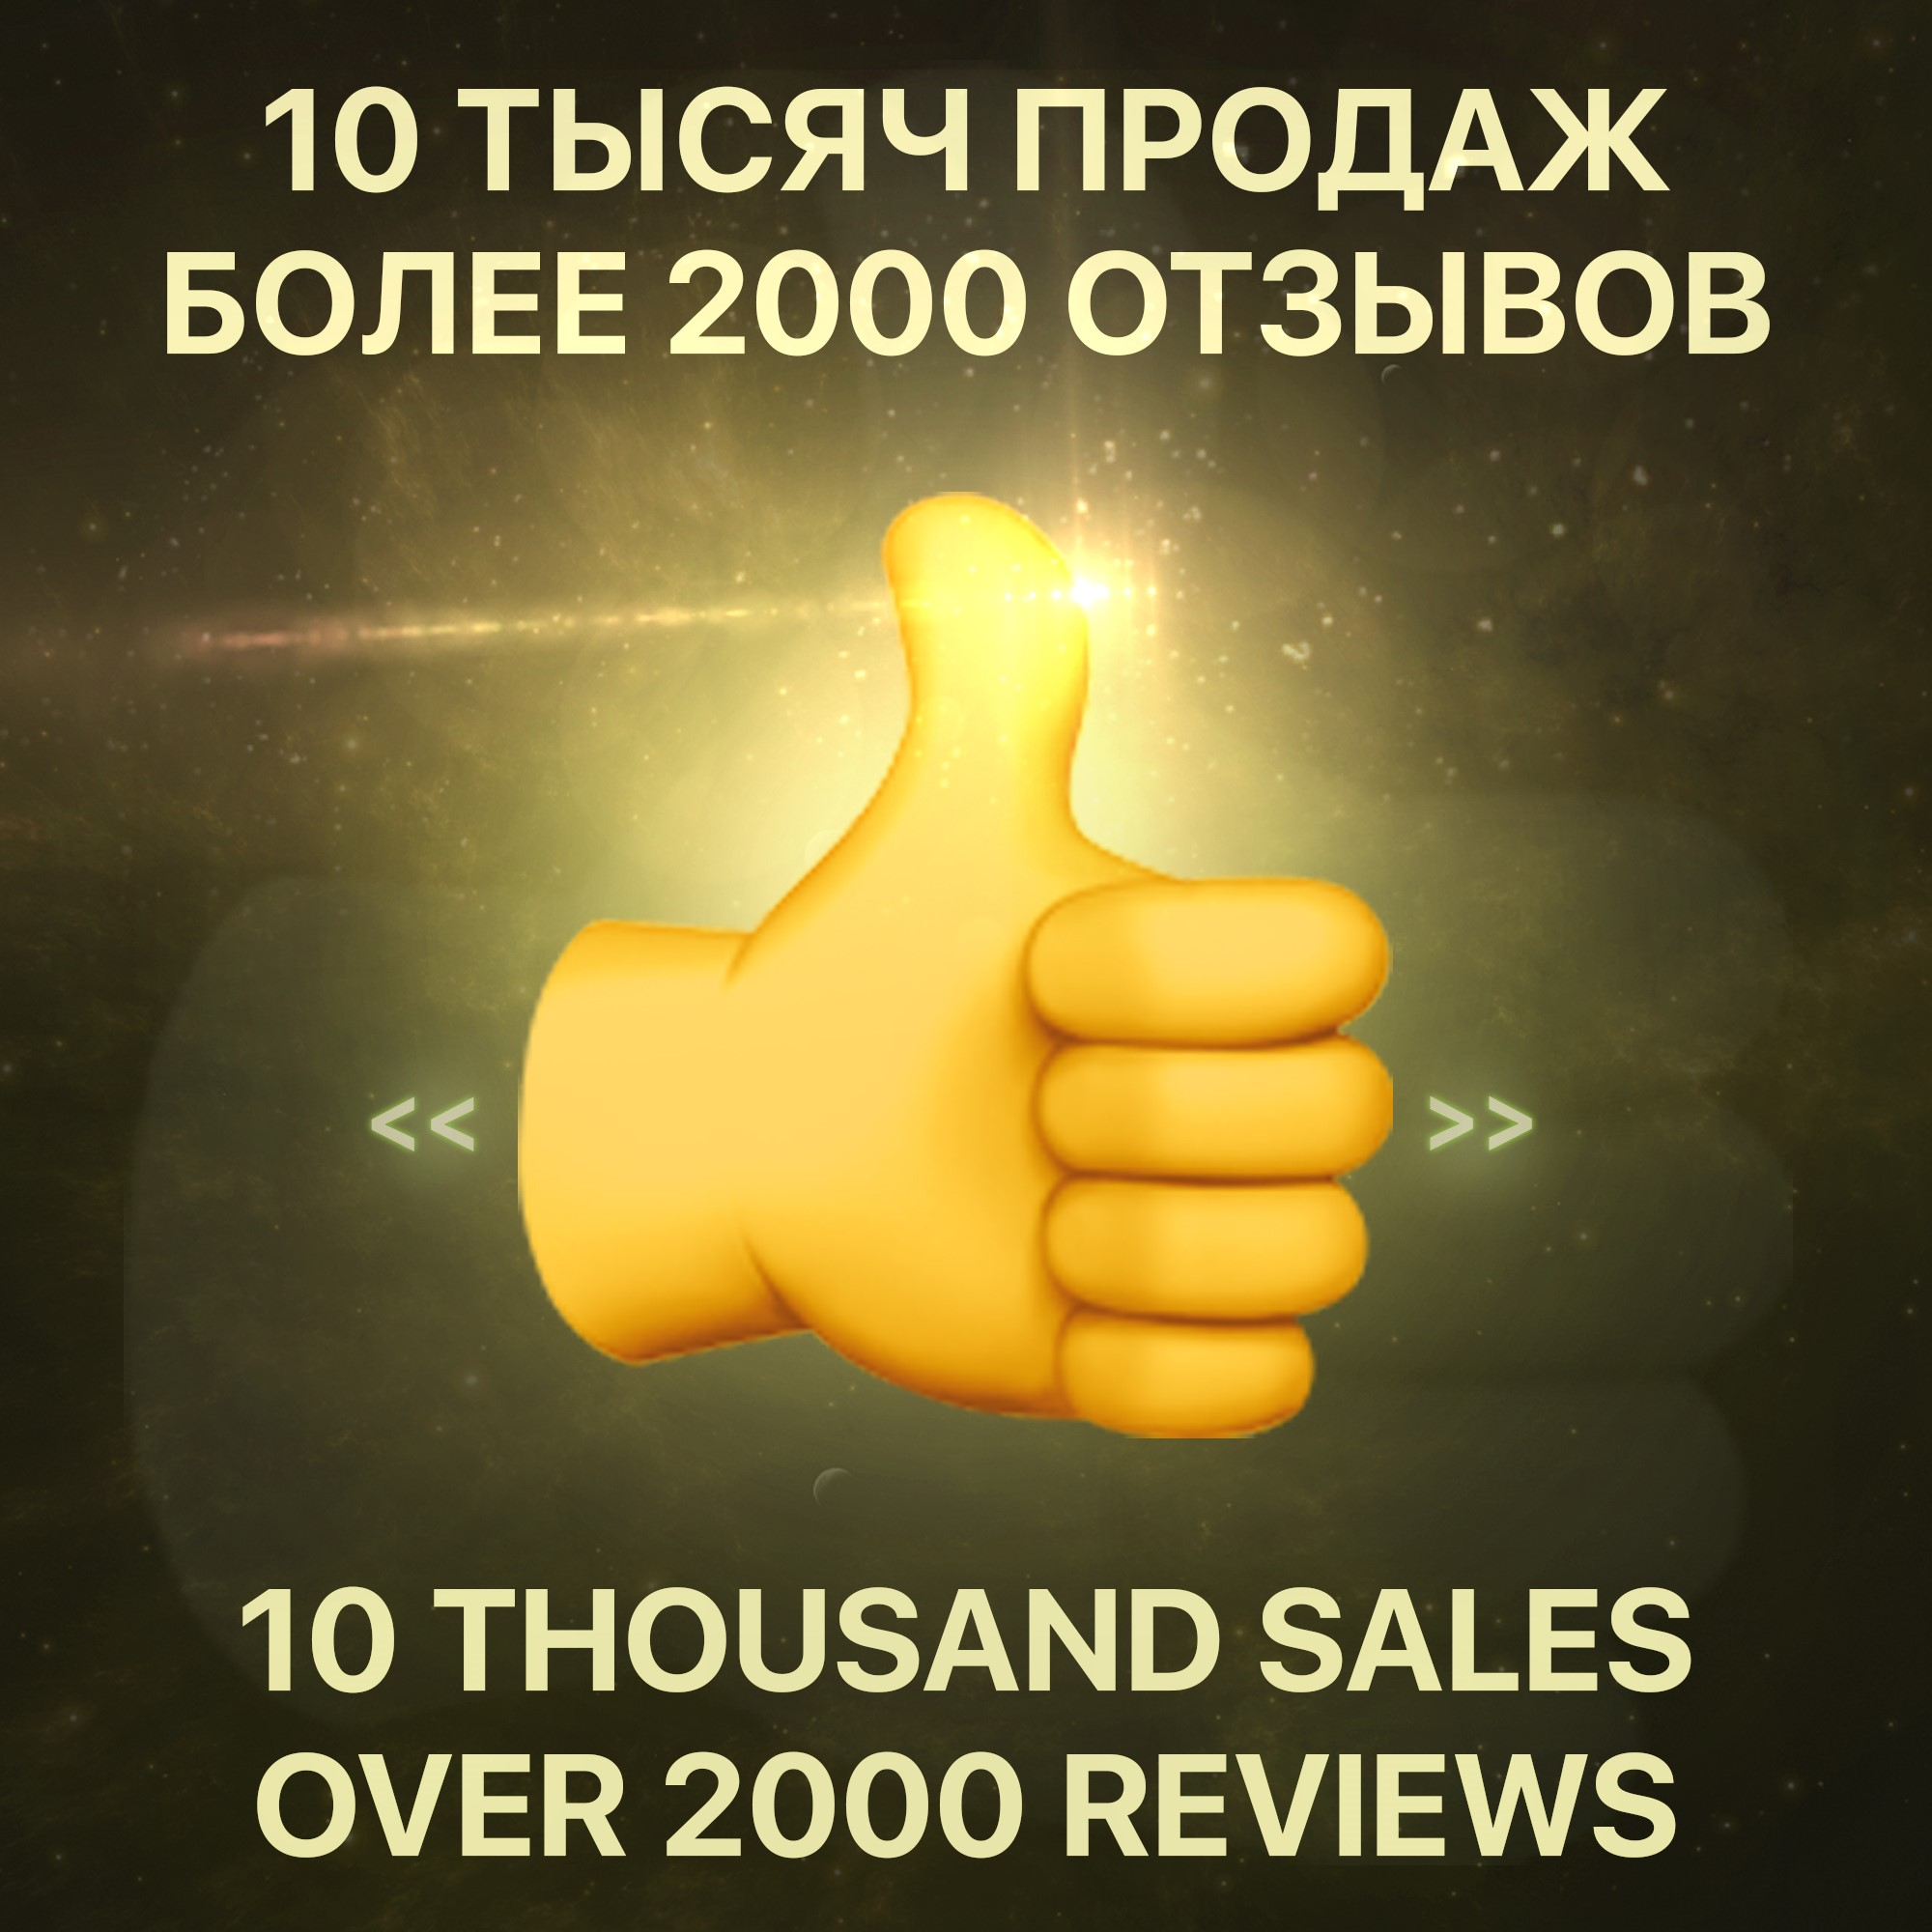 iTunes Gift Card - 3000 Rubles (RU) + GIFT